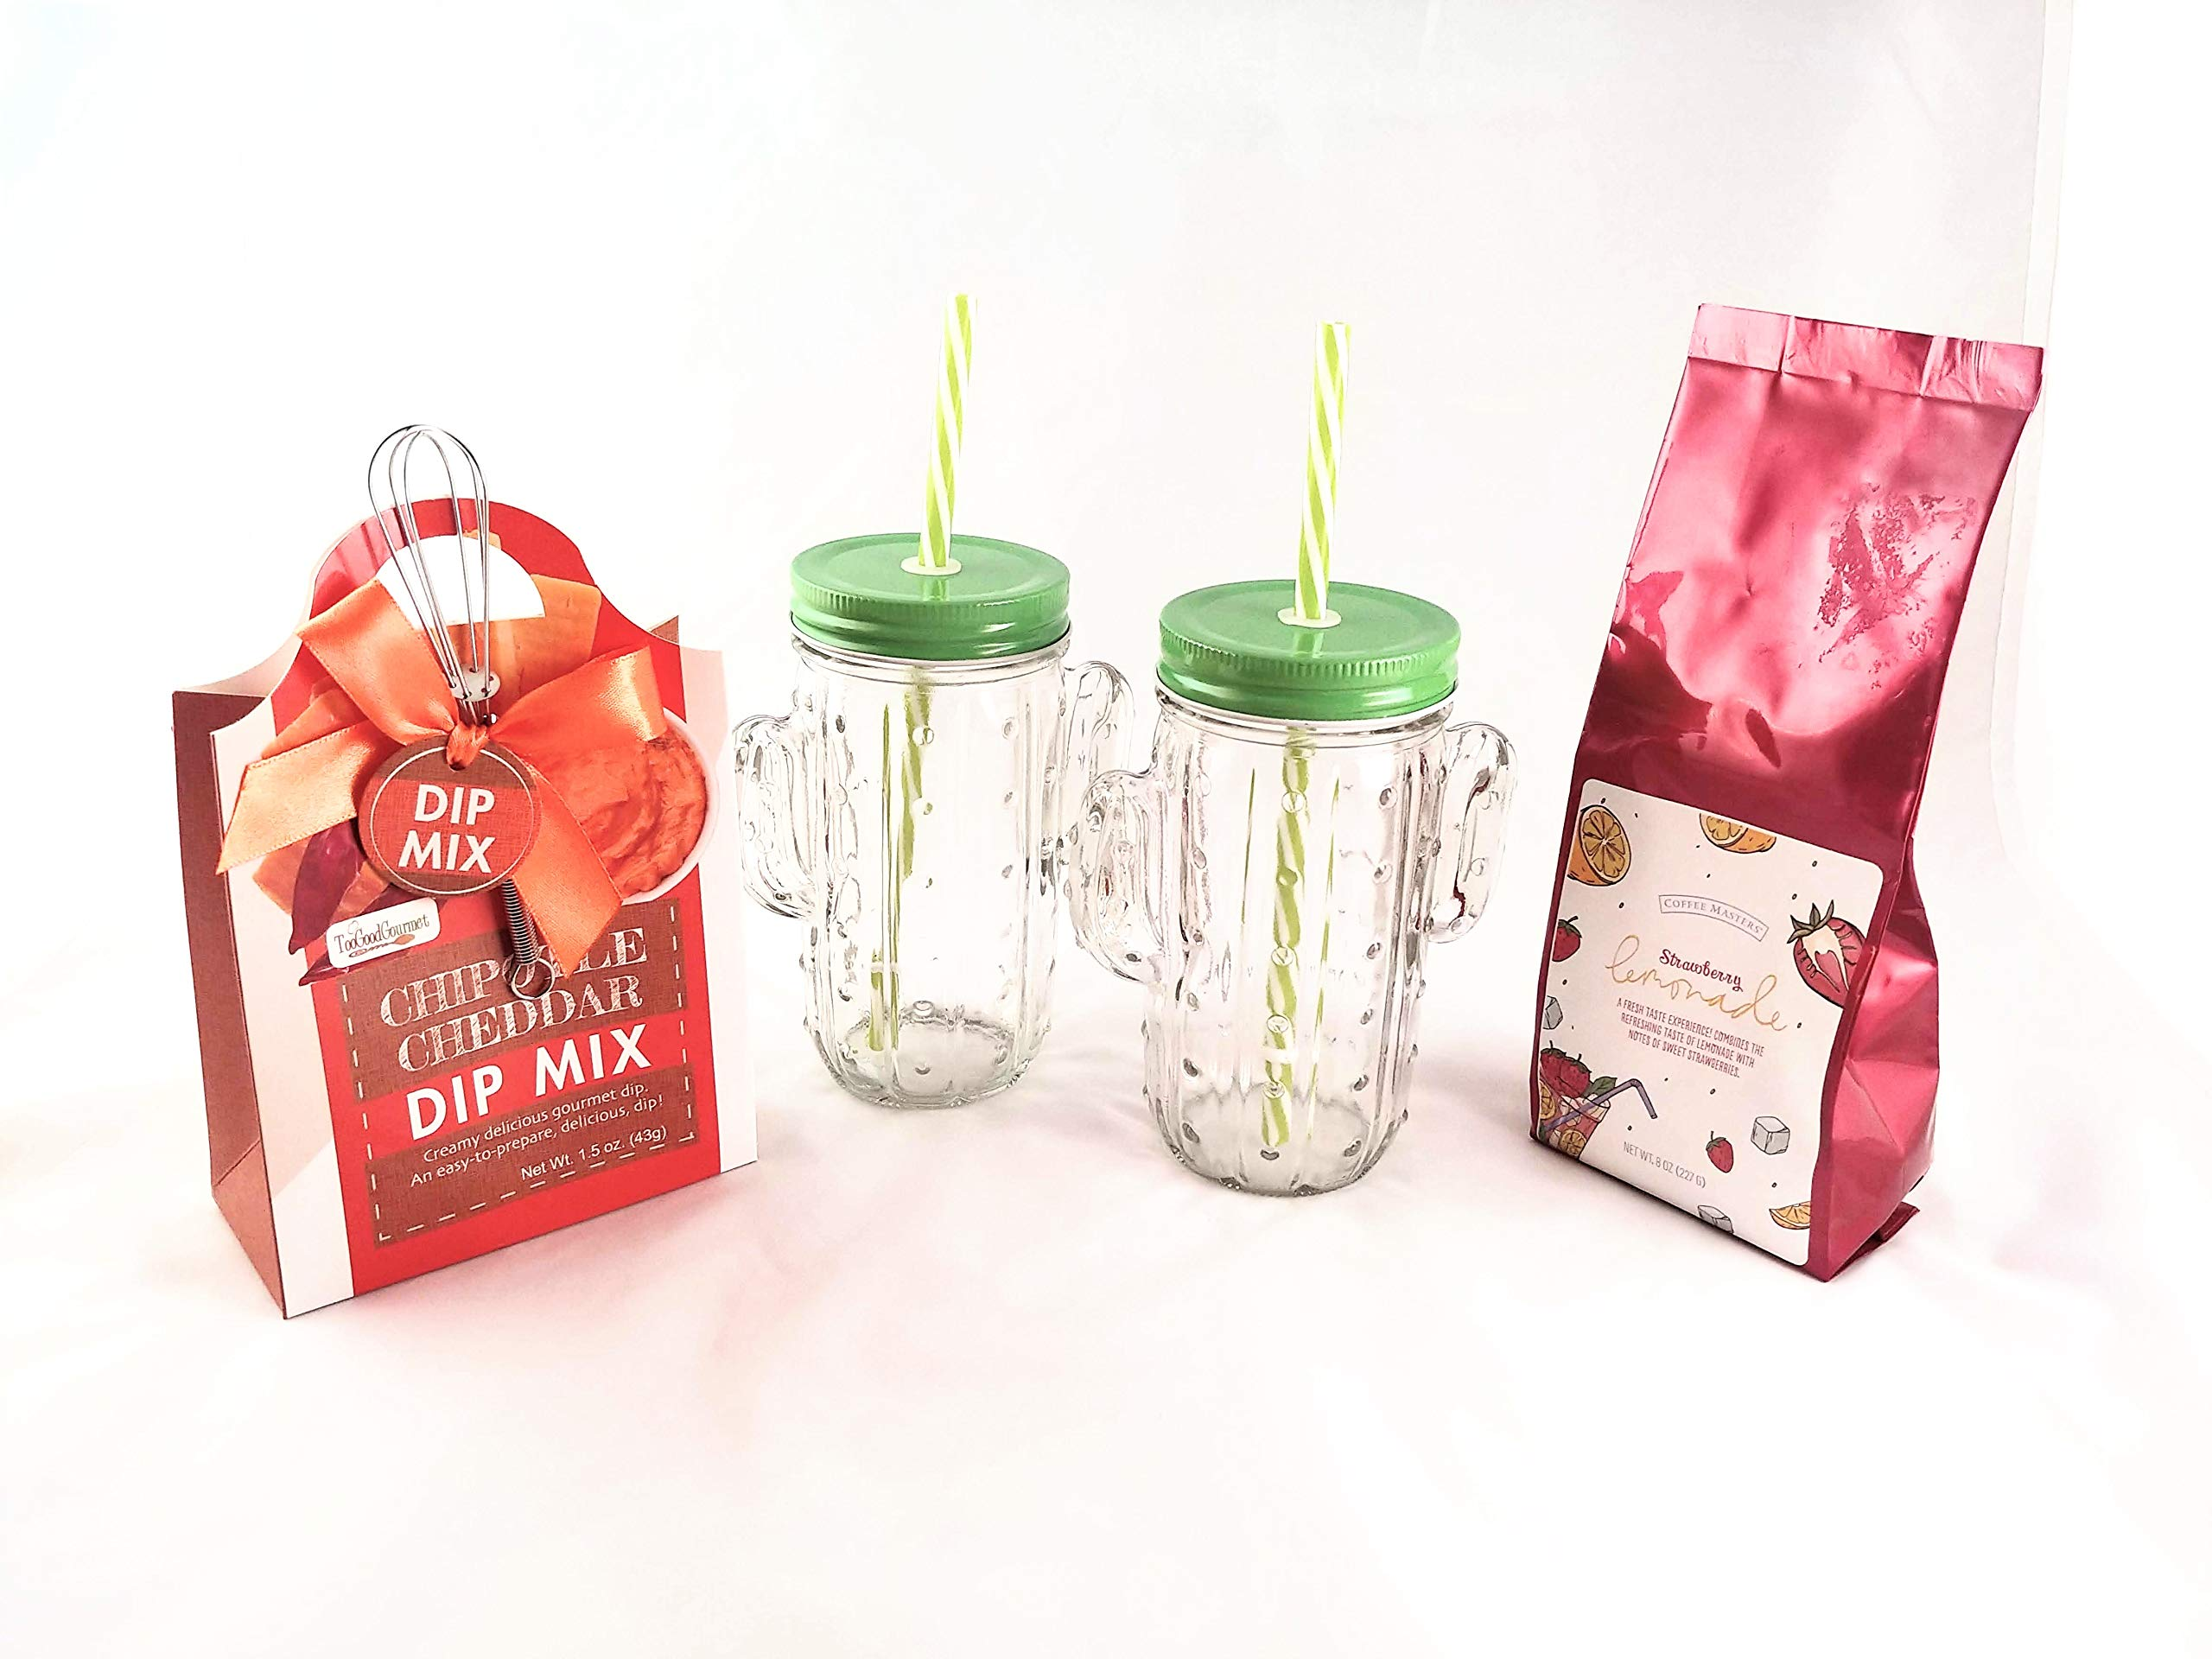 Cactus Glasses Bundle with 2 Cactus Mugs with Lids and Straws, Strawberry Lemonade Mix, and Chipotle Cheddar Dip Mix